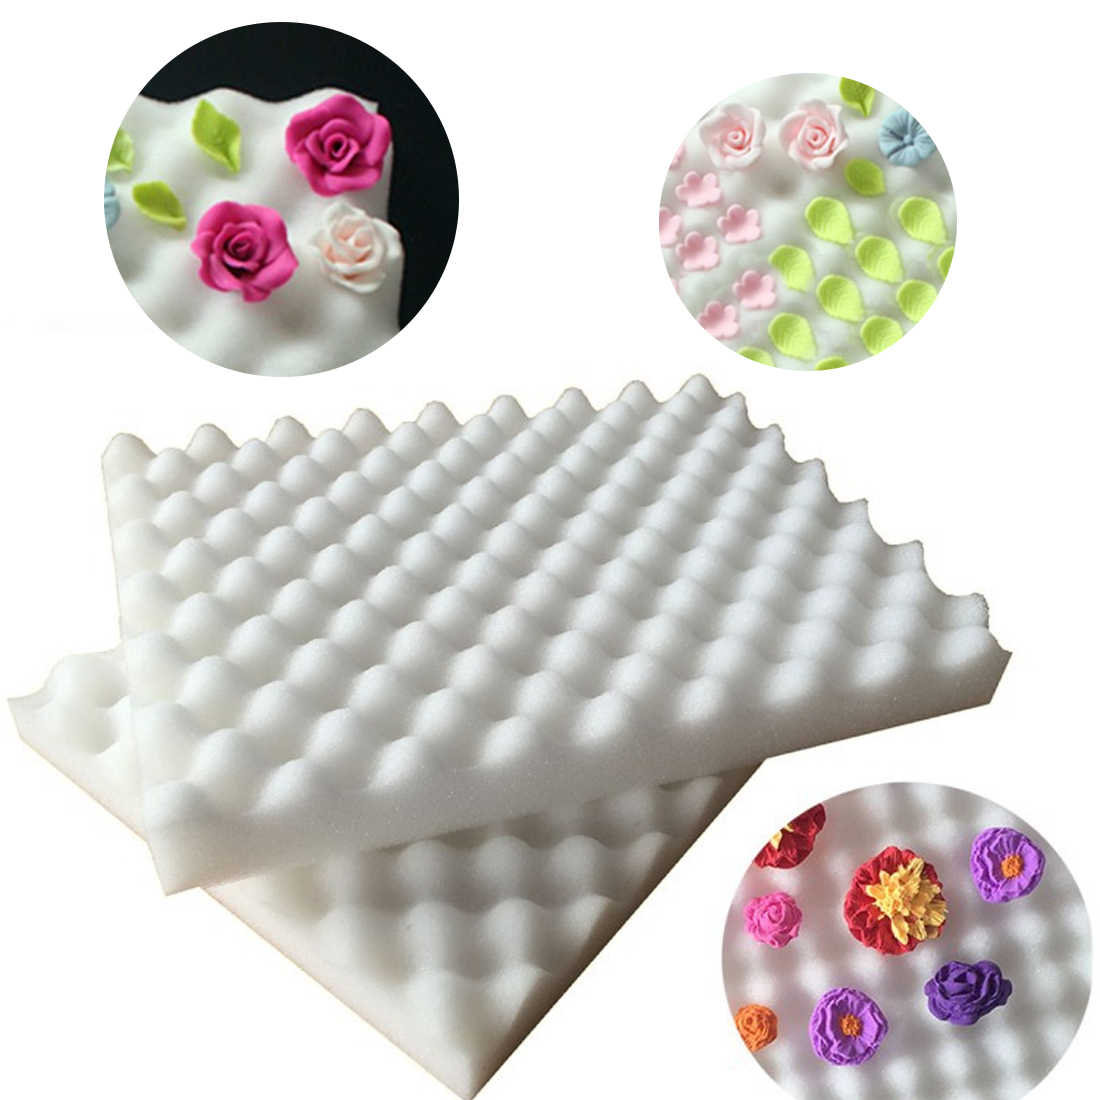 Hot 2Pcs Drying Fondant Flower Cake Tools Foam Dry Sponge Pads Cake Mold For Kitchen Baking Pastry DIY Sugarcraft Decoration